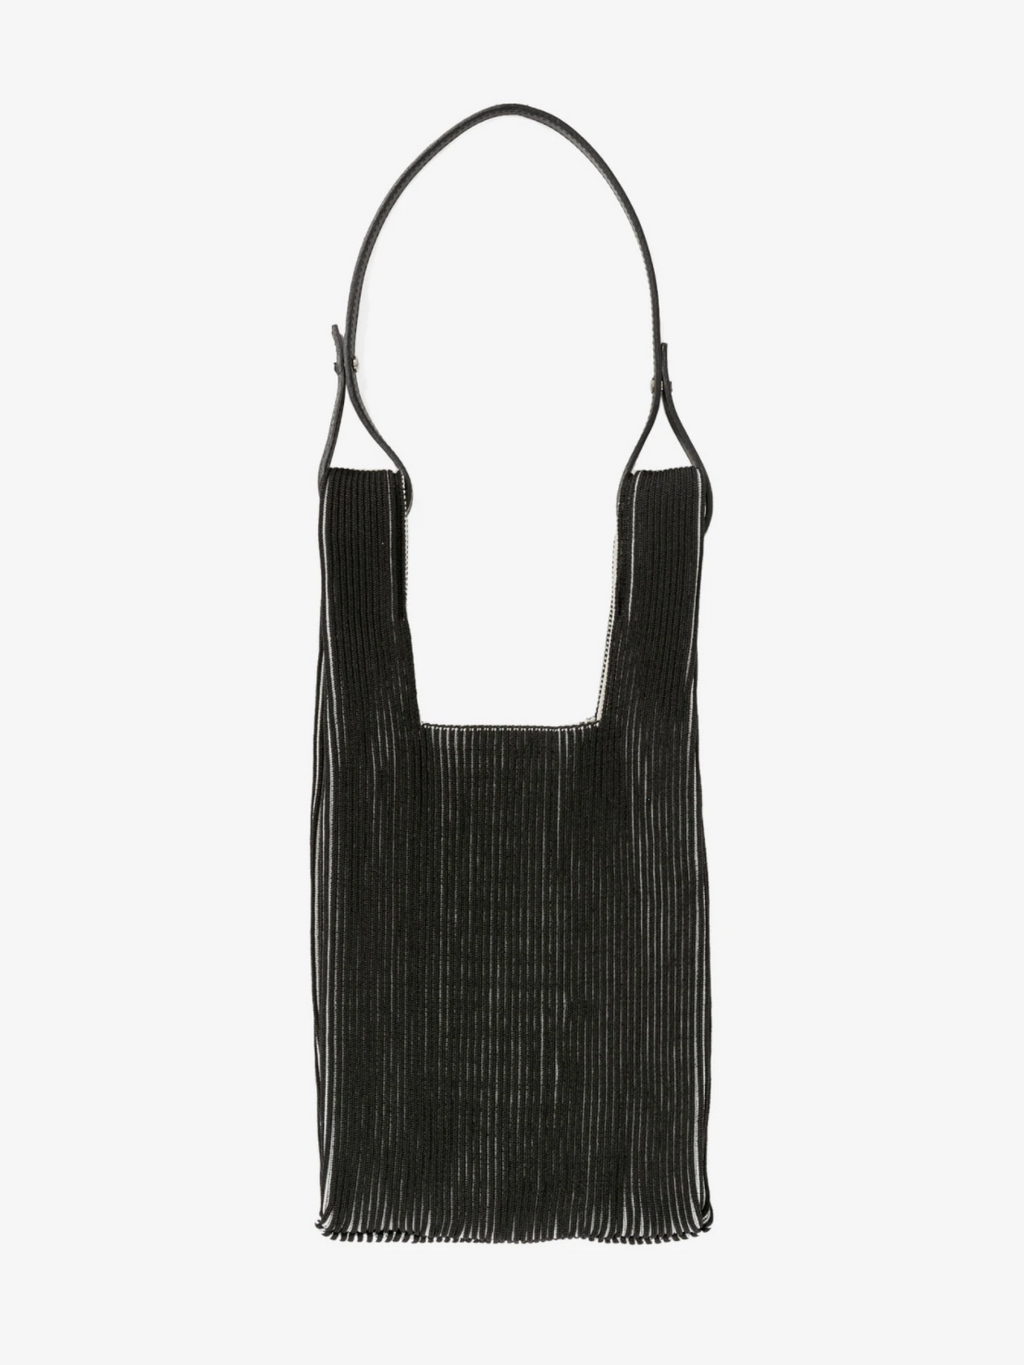 Two Tone Market Bag - Black and Ivory